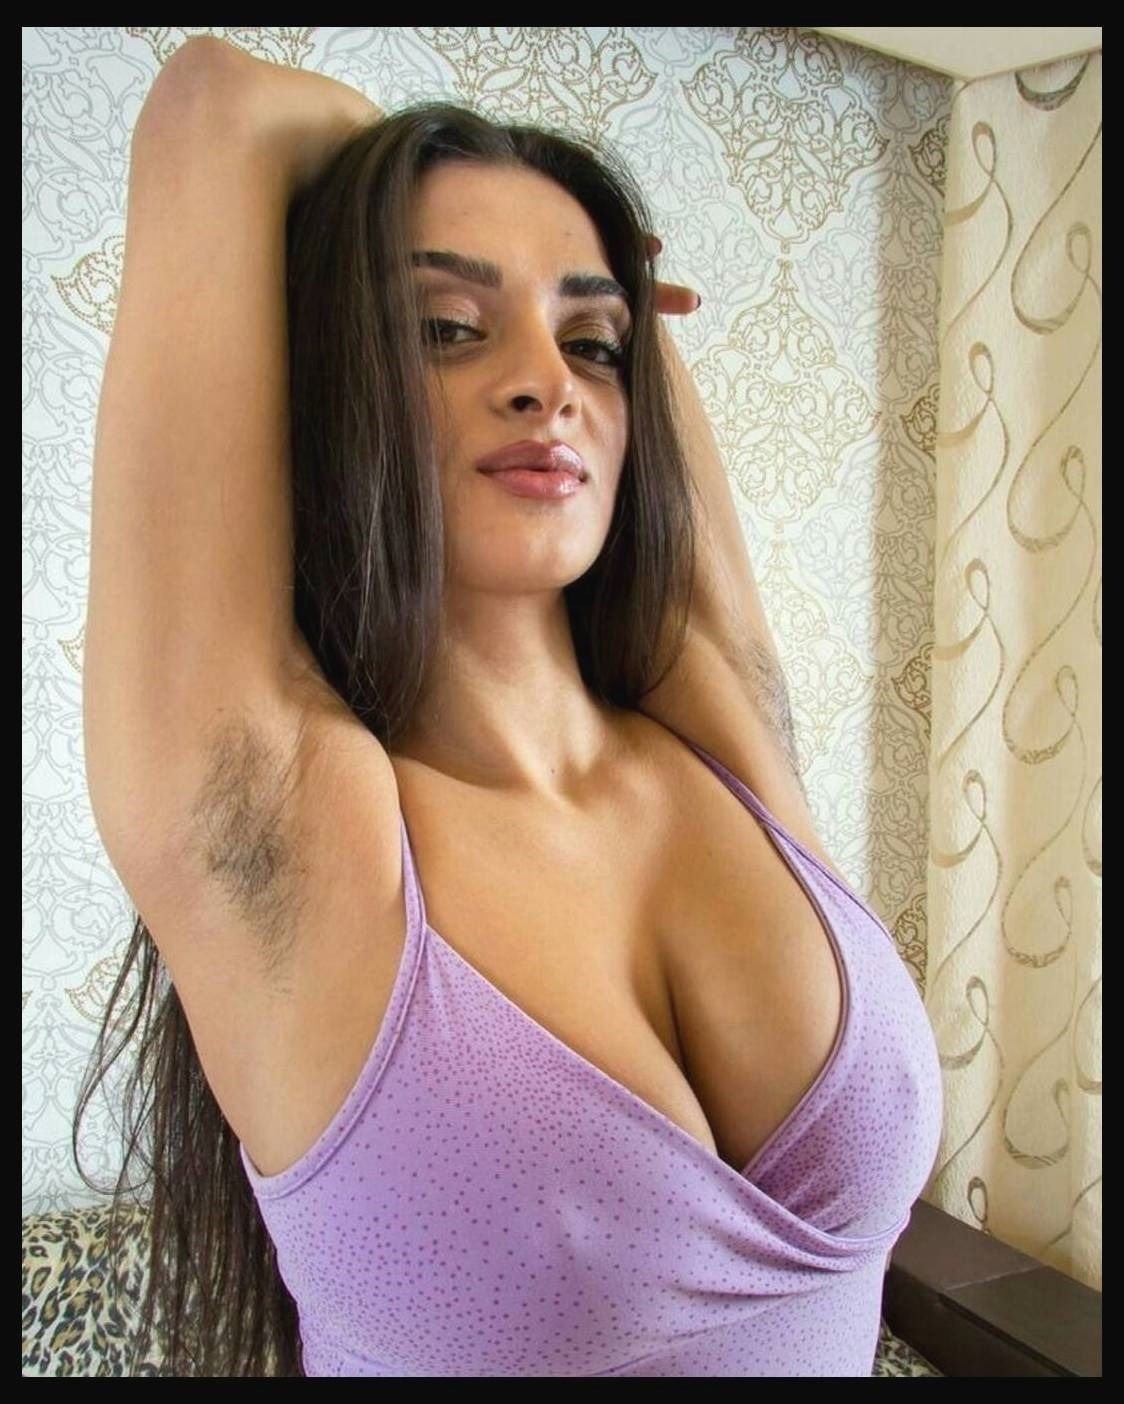 Pin On Women S Hairy Armpits